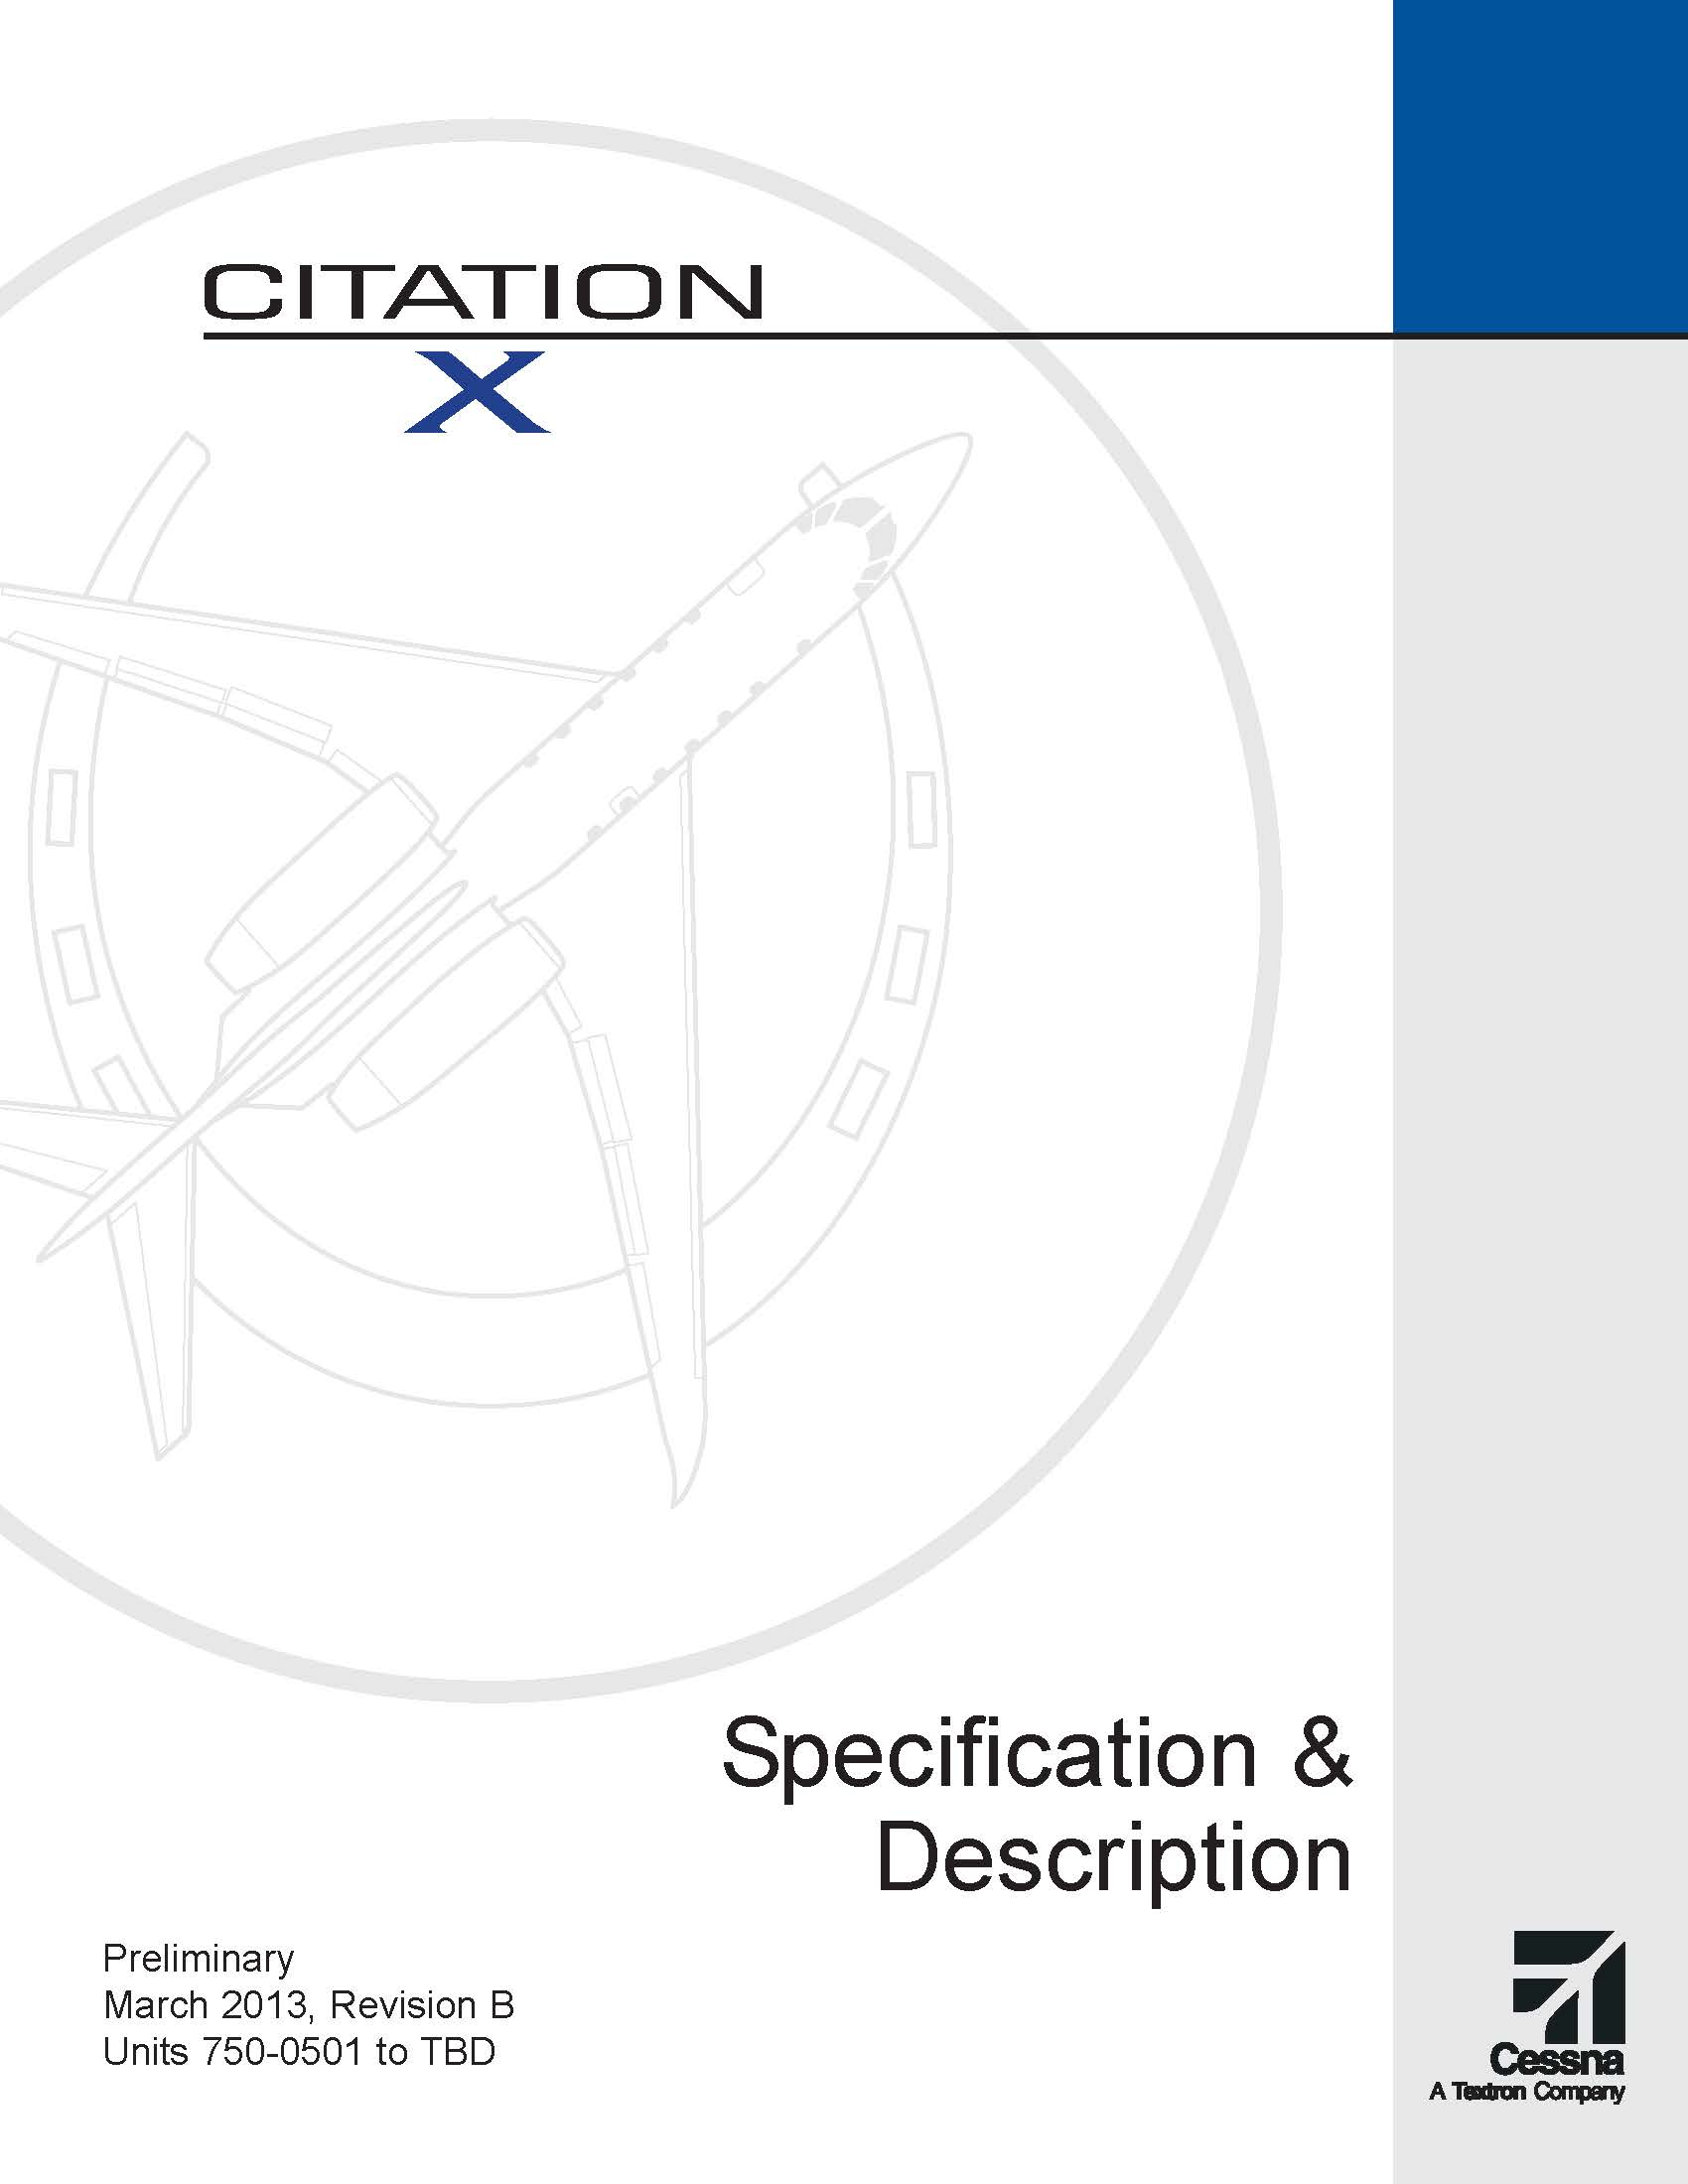 Citation X spec & description electronic brochure